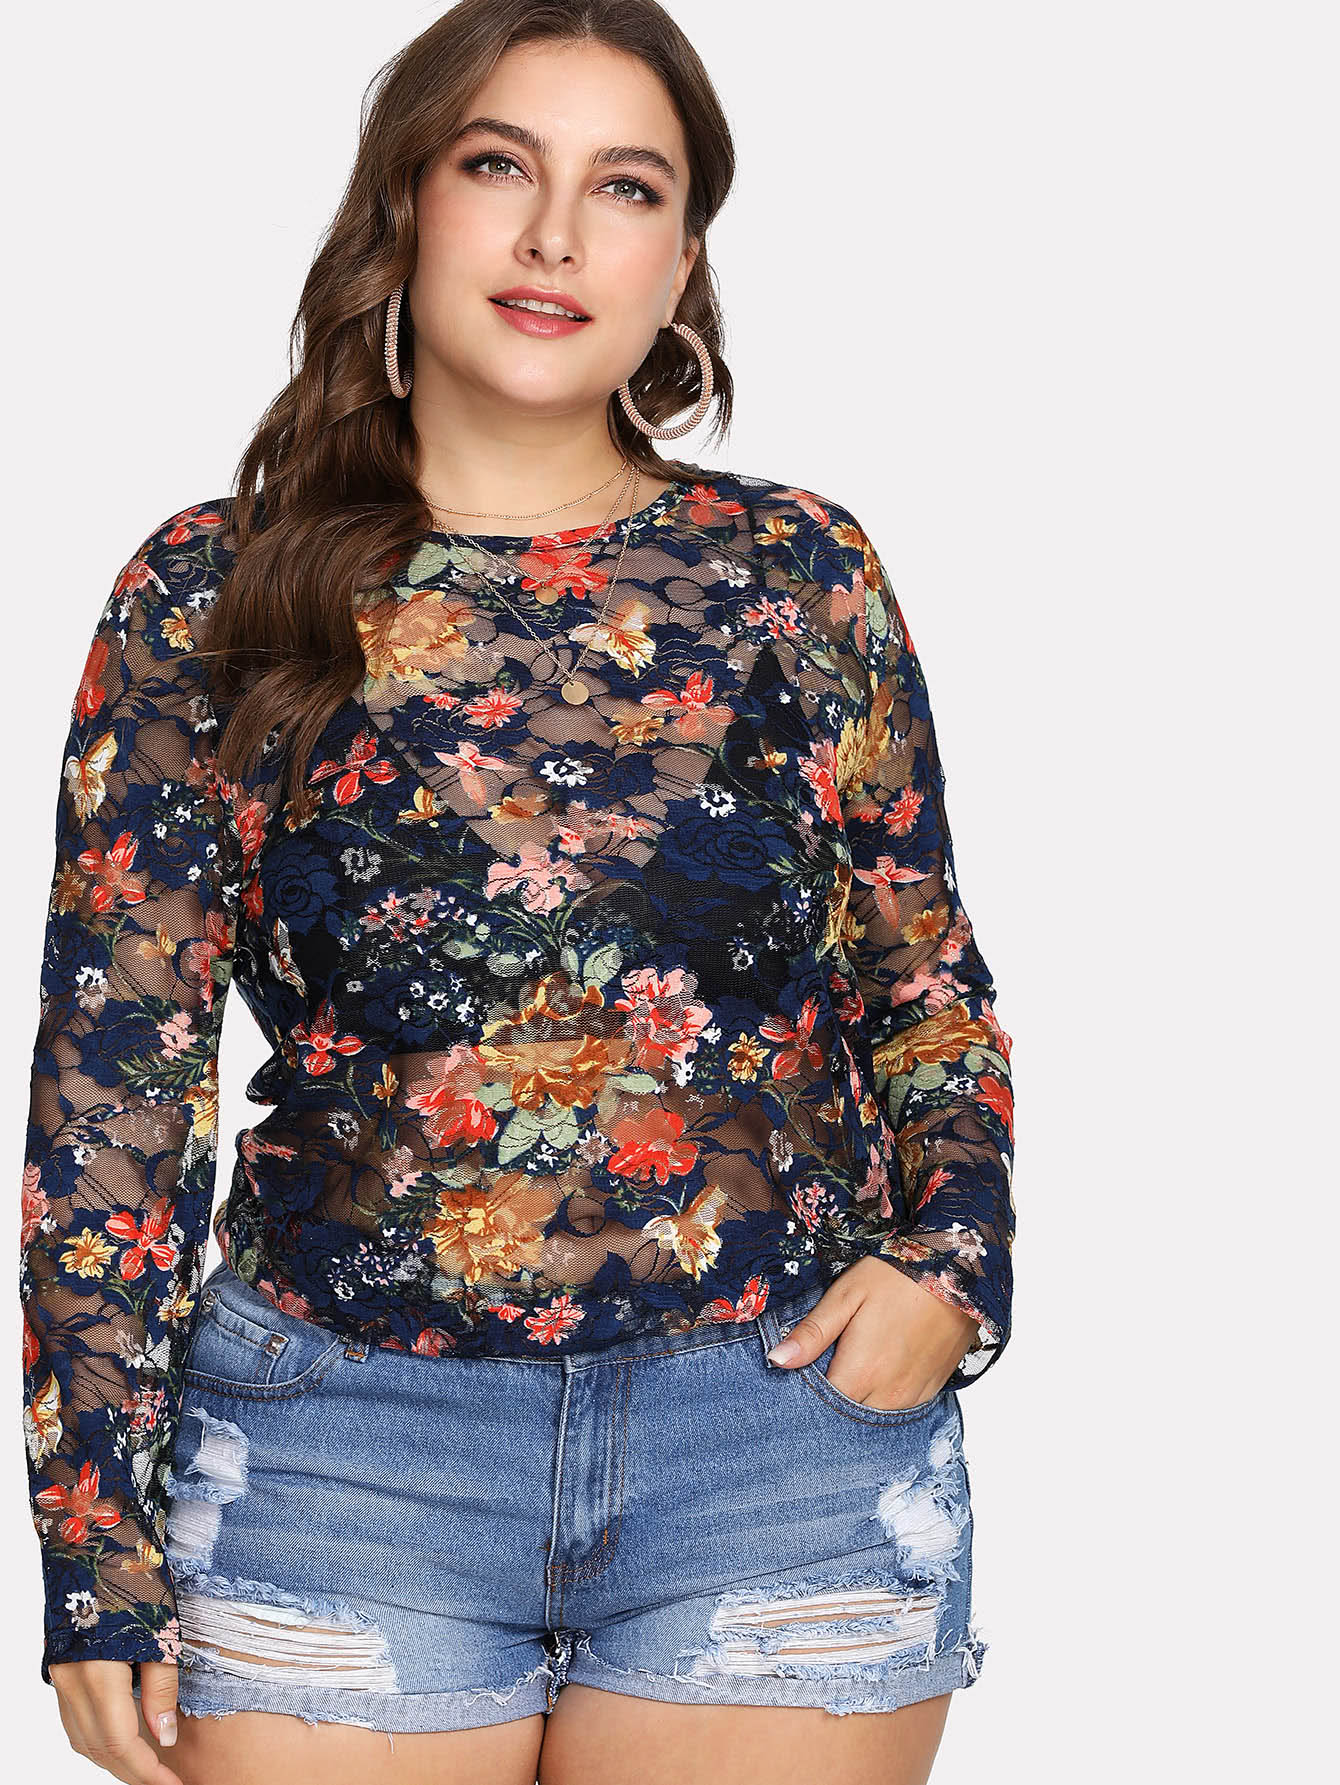 Semi Sheer Floral Lace Blouse floral lace sheer top